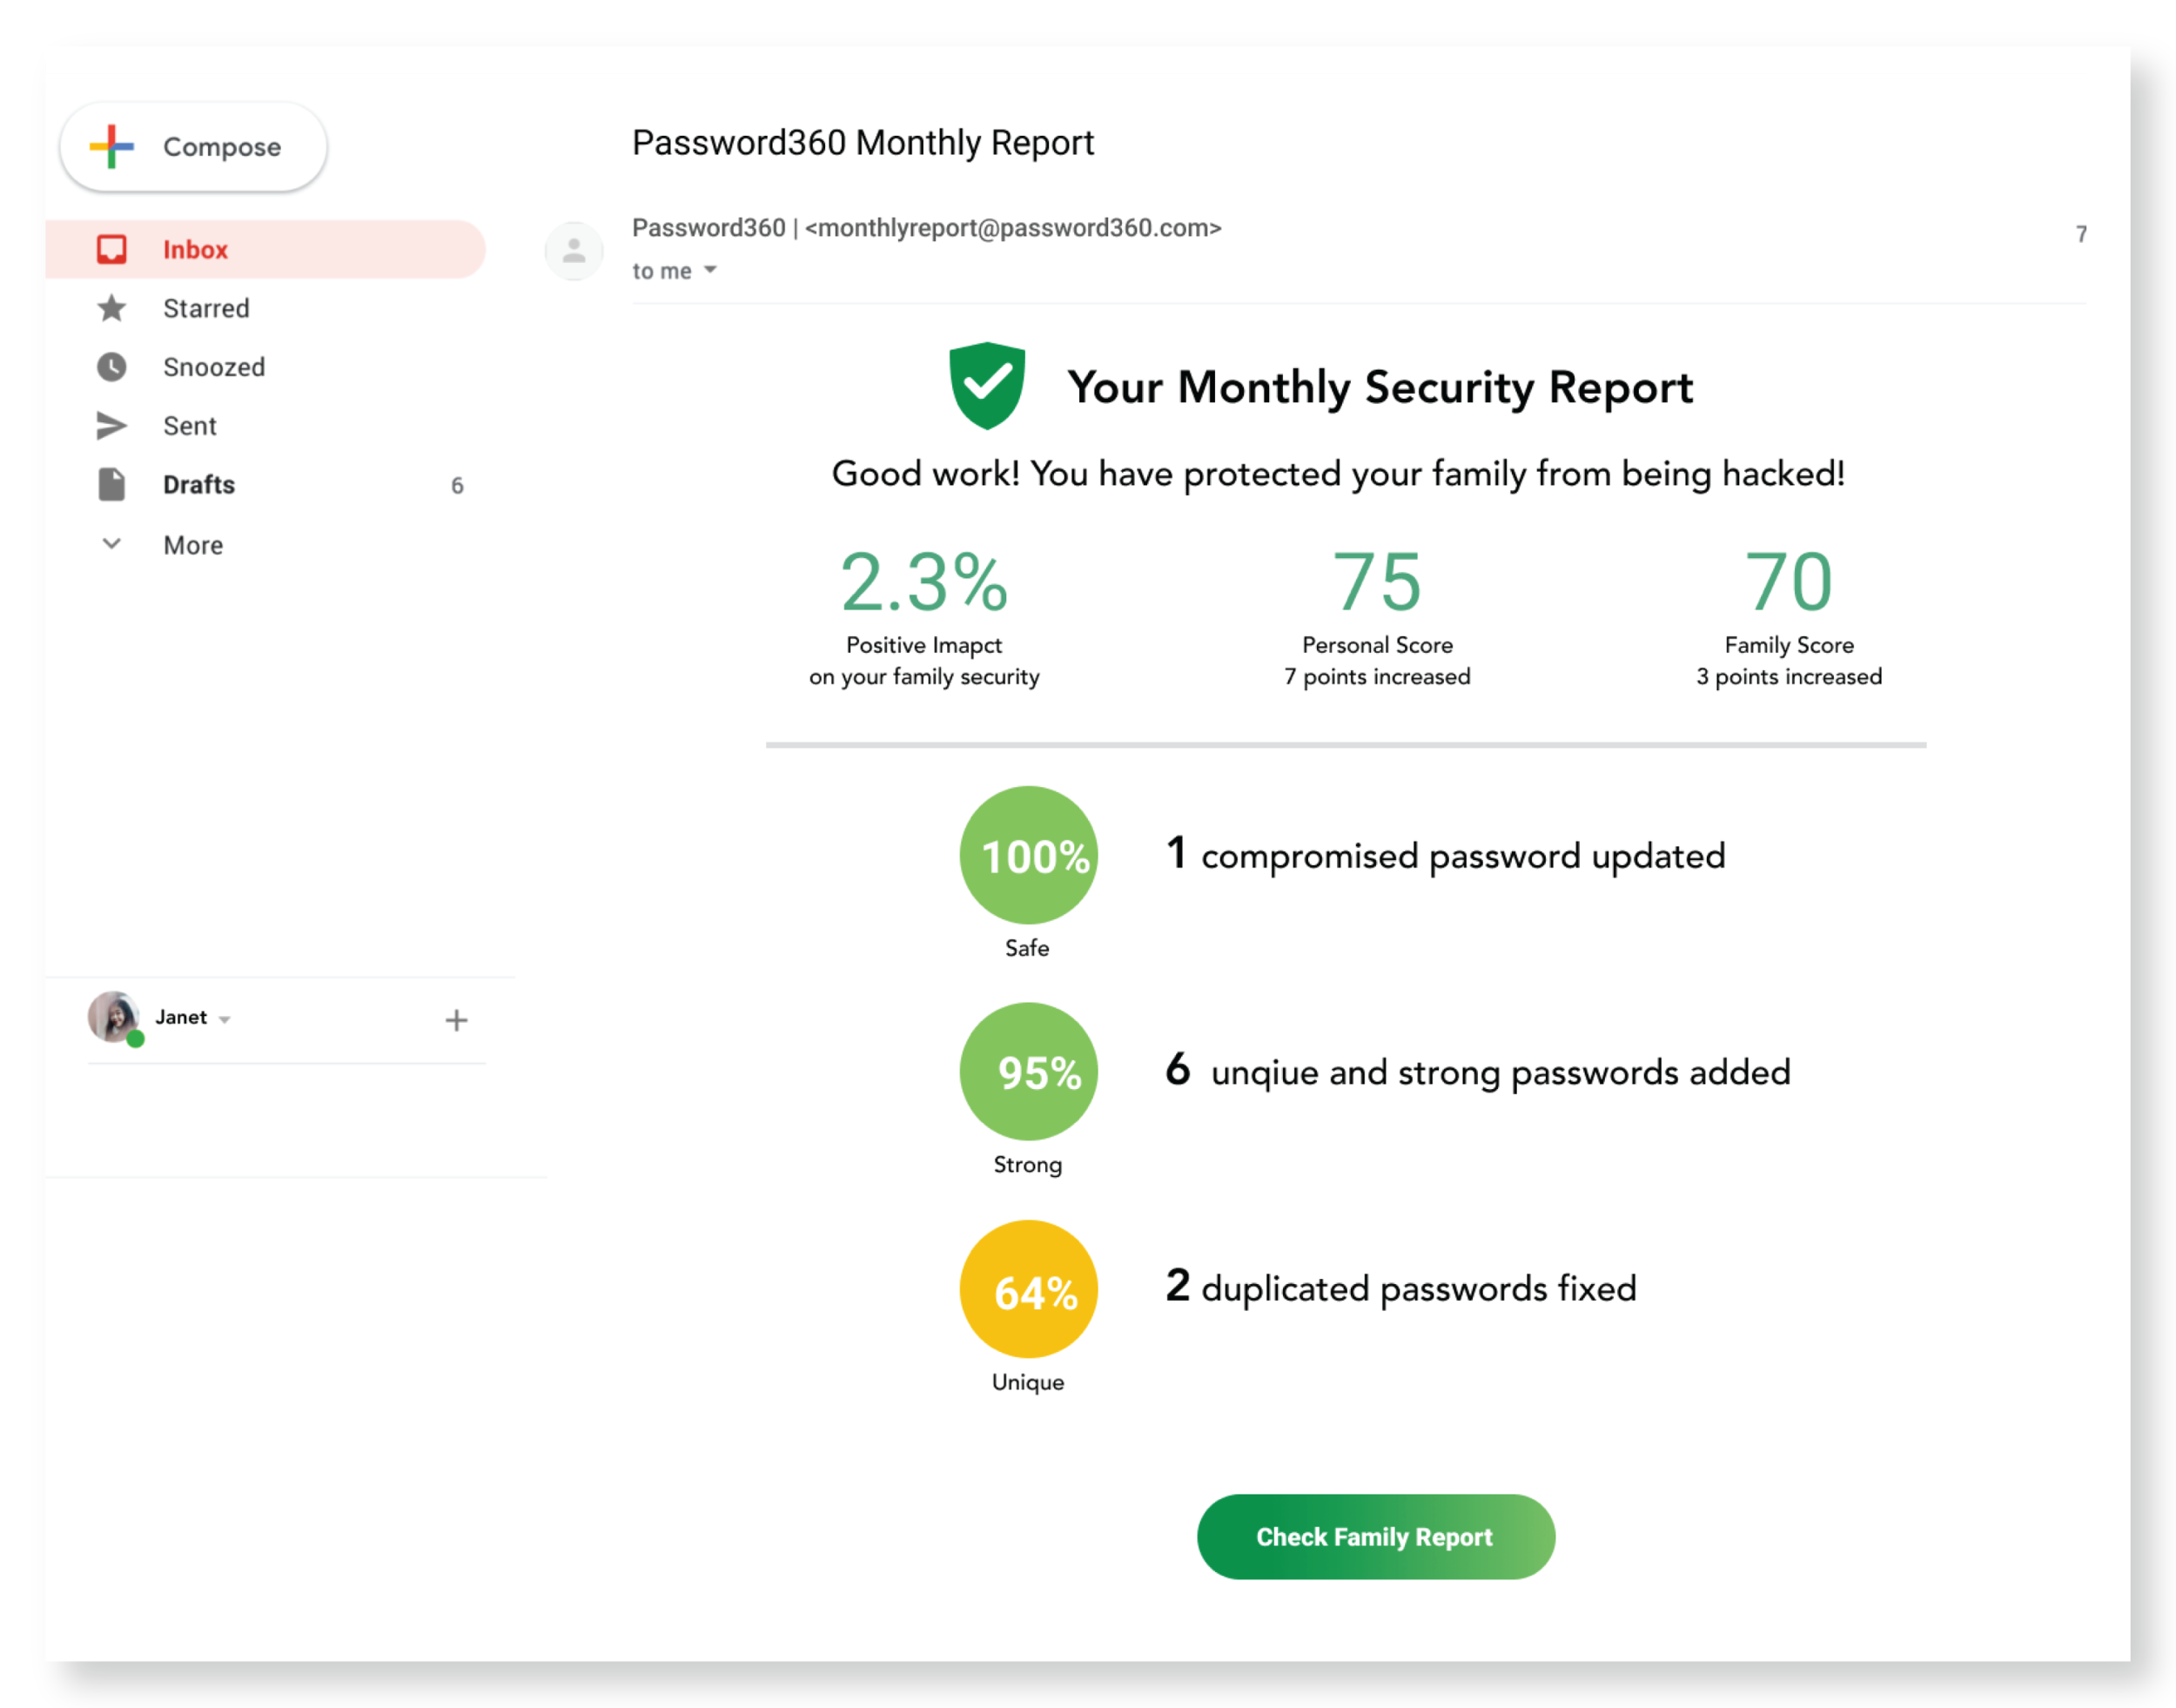 Receive a monthly security report by email on the status and changes in your personal and family security score